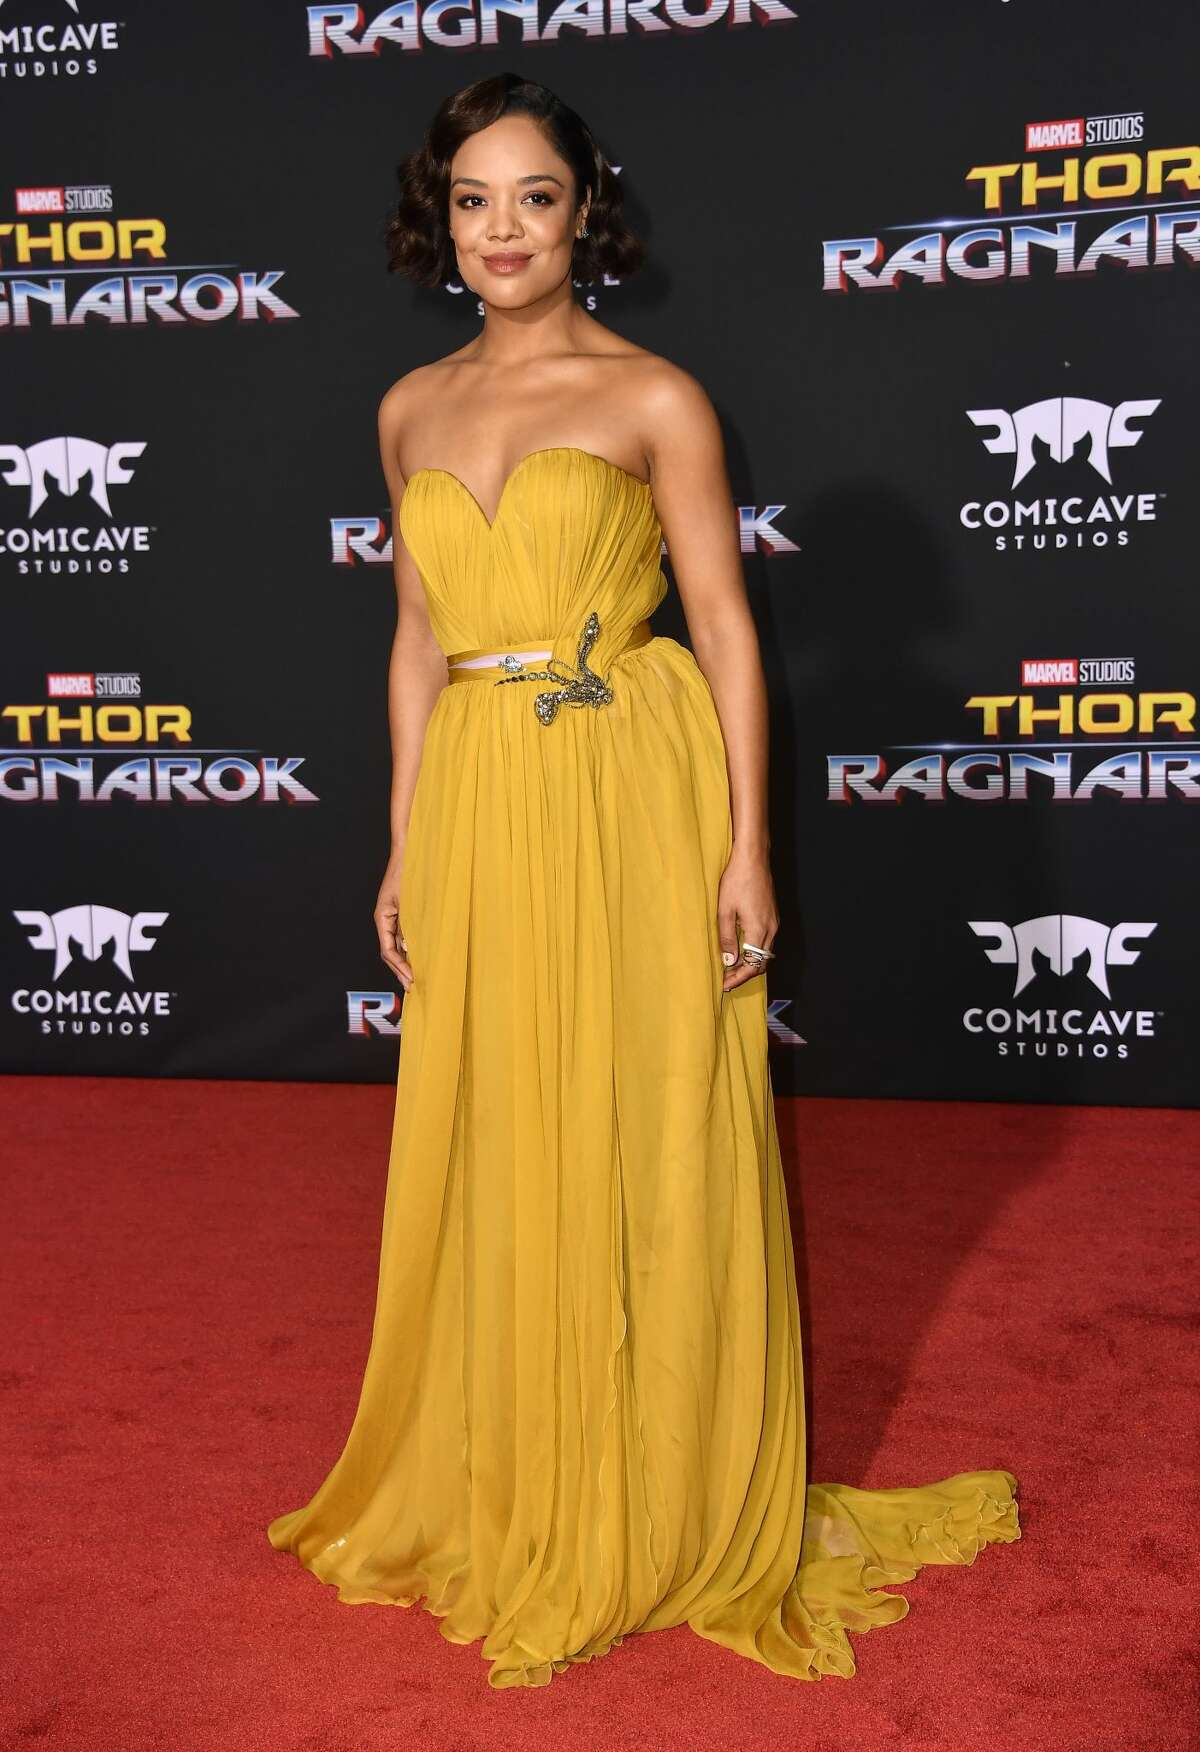 LOS ANGELES, CA - OCTOBER 10: Actress Tessa Thompson arrives at the Premiere Of Disney And Marvel's